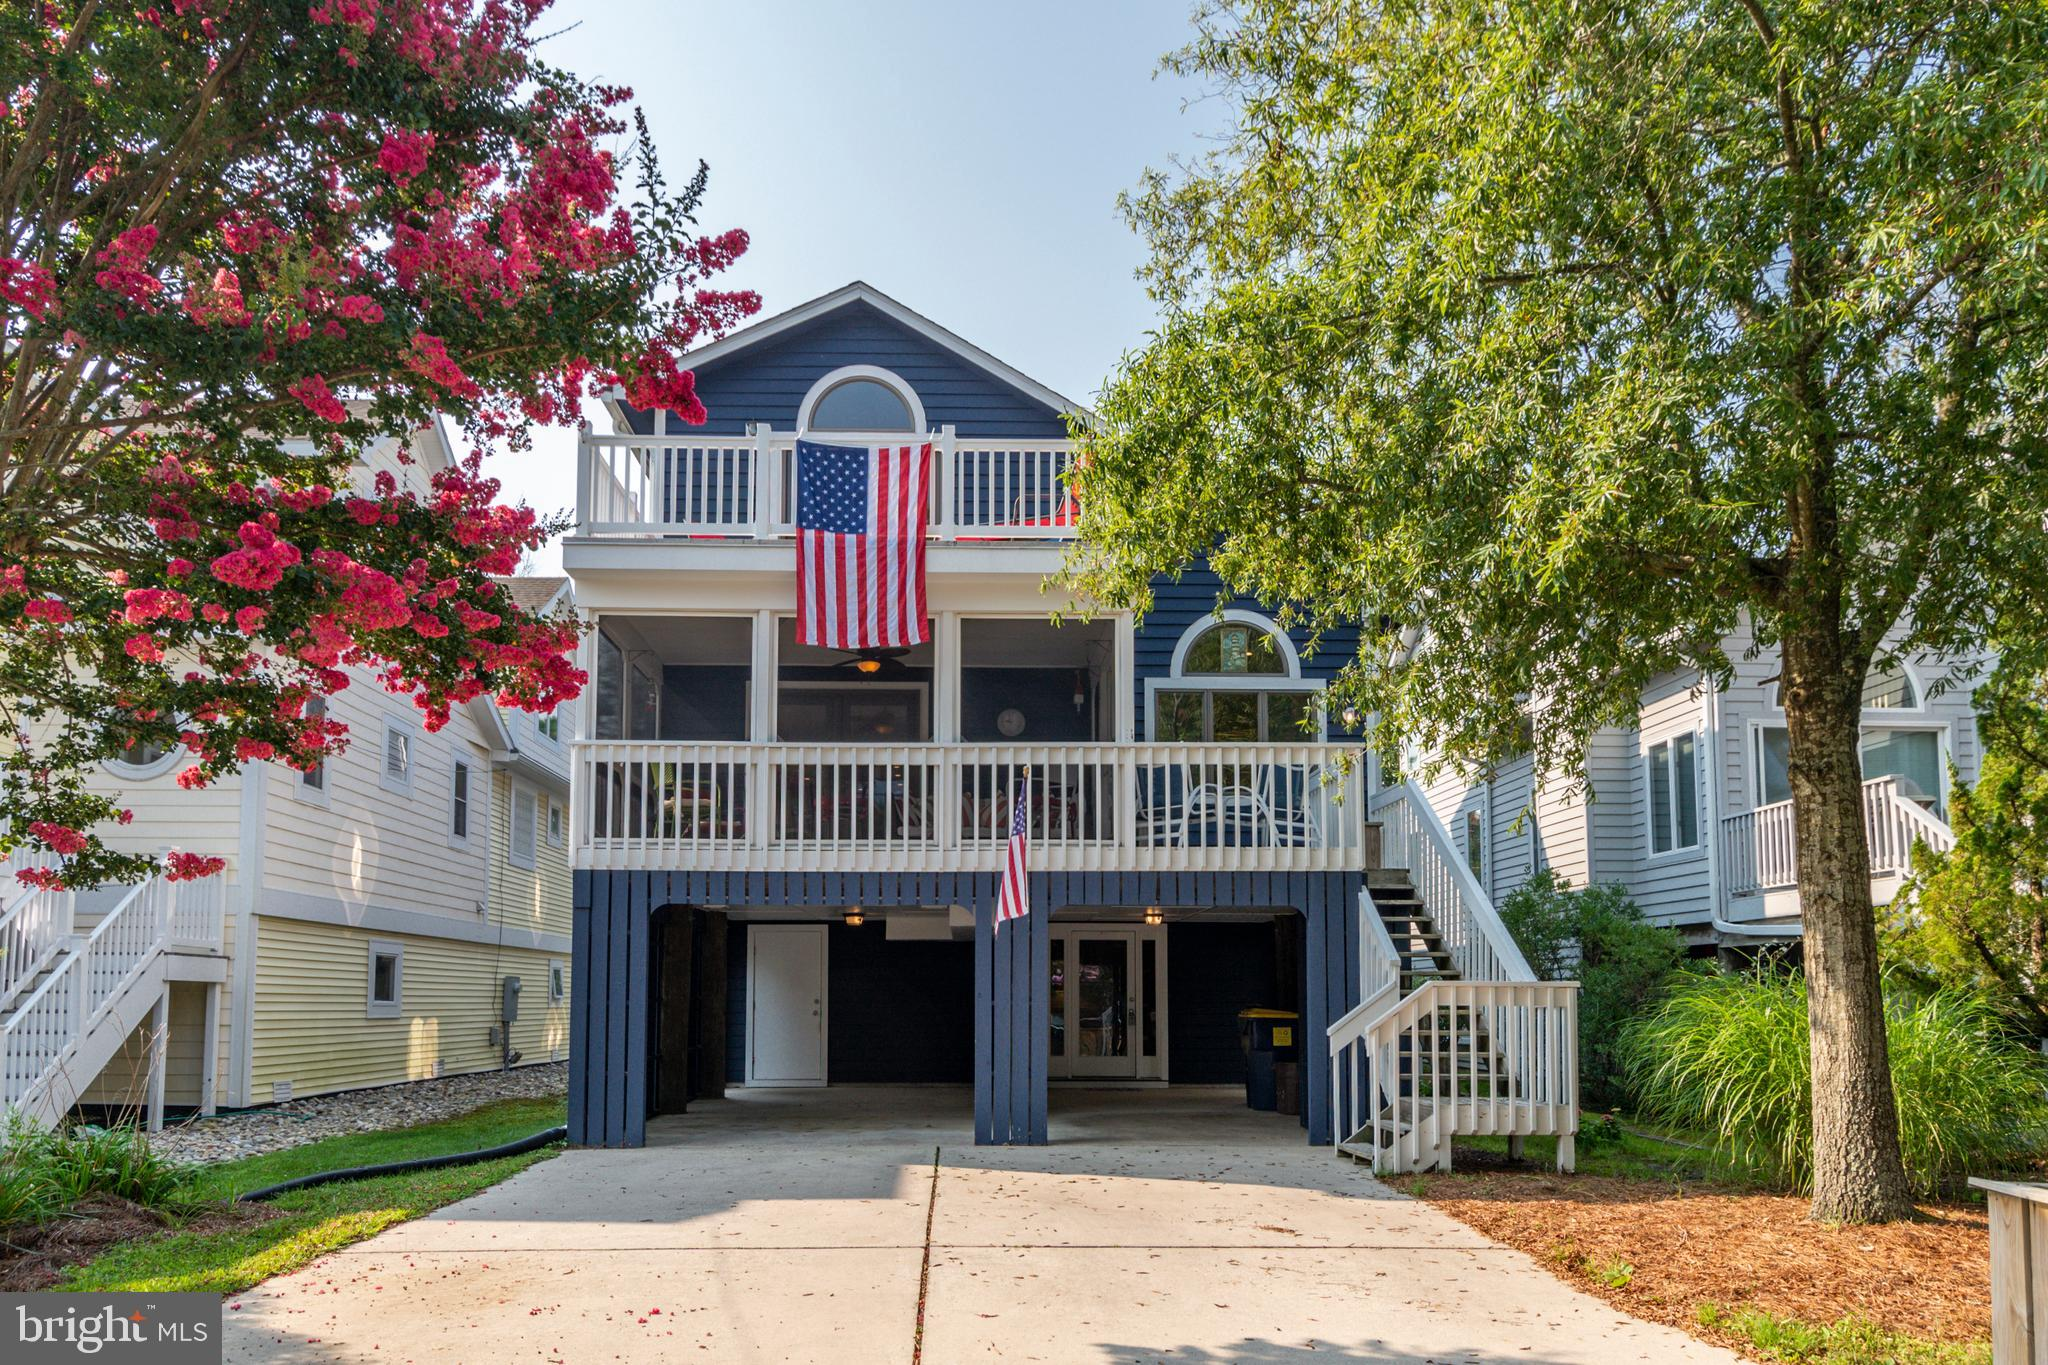 Longing for a lasting beach escape? This 5 bedroom, 3.5 bath home, just 2 blocks from the beach, cou